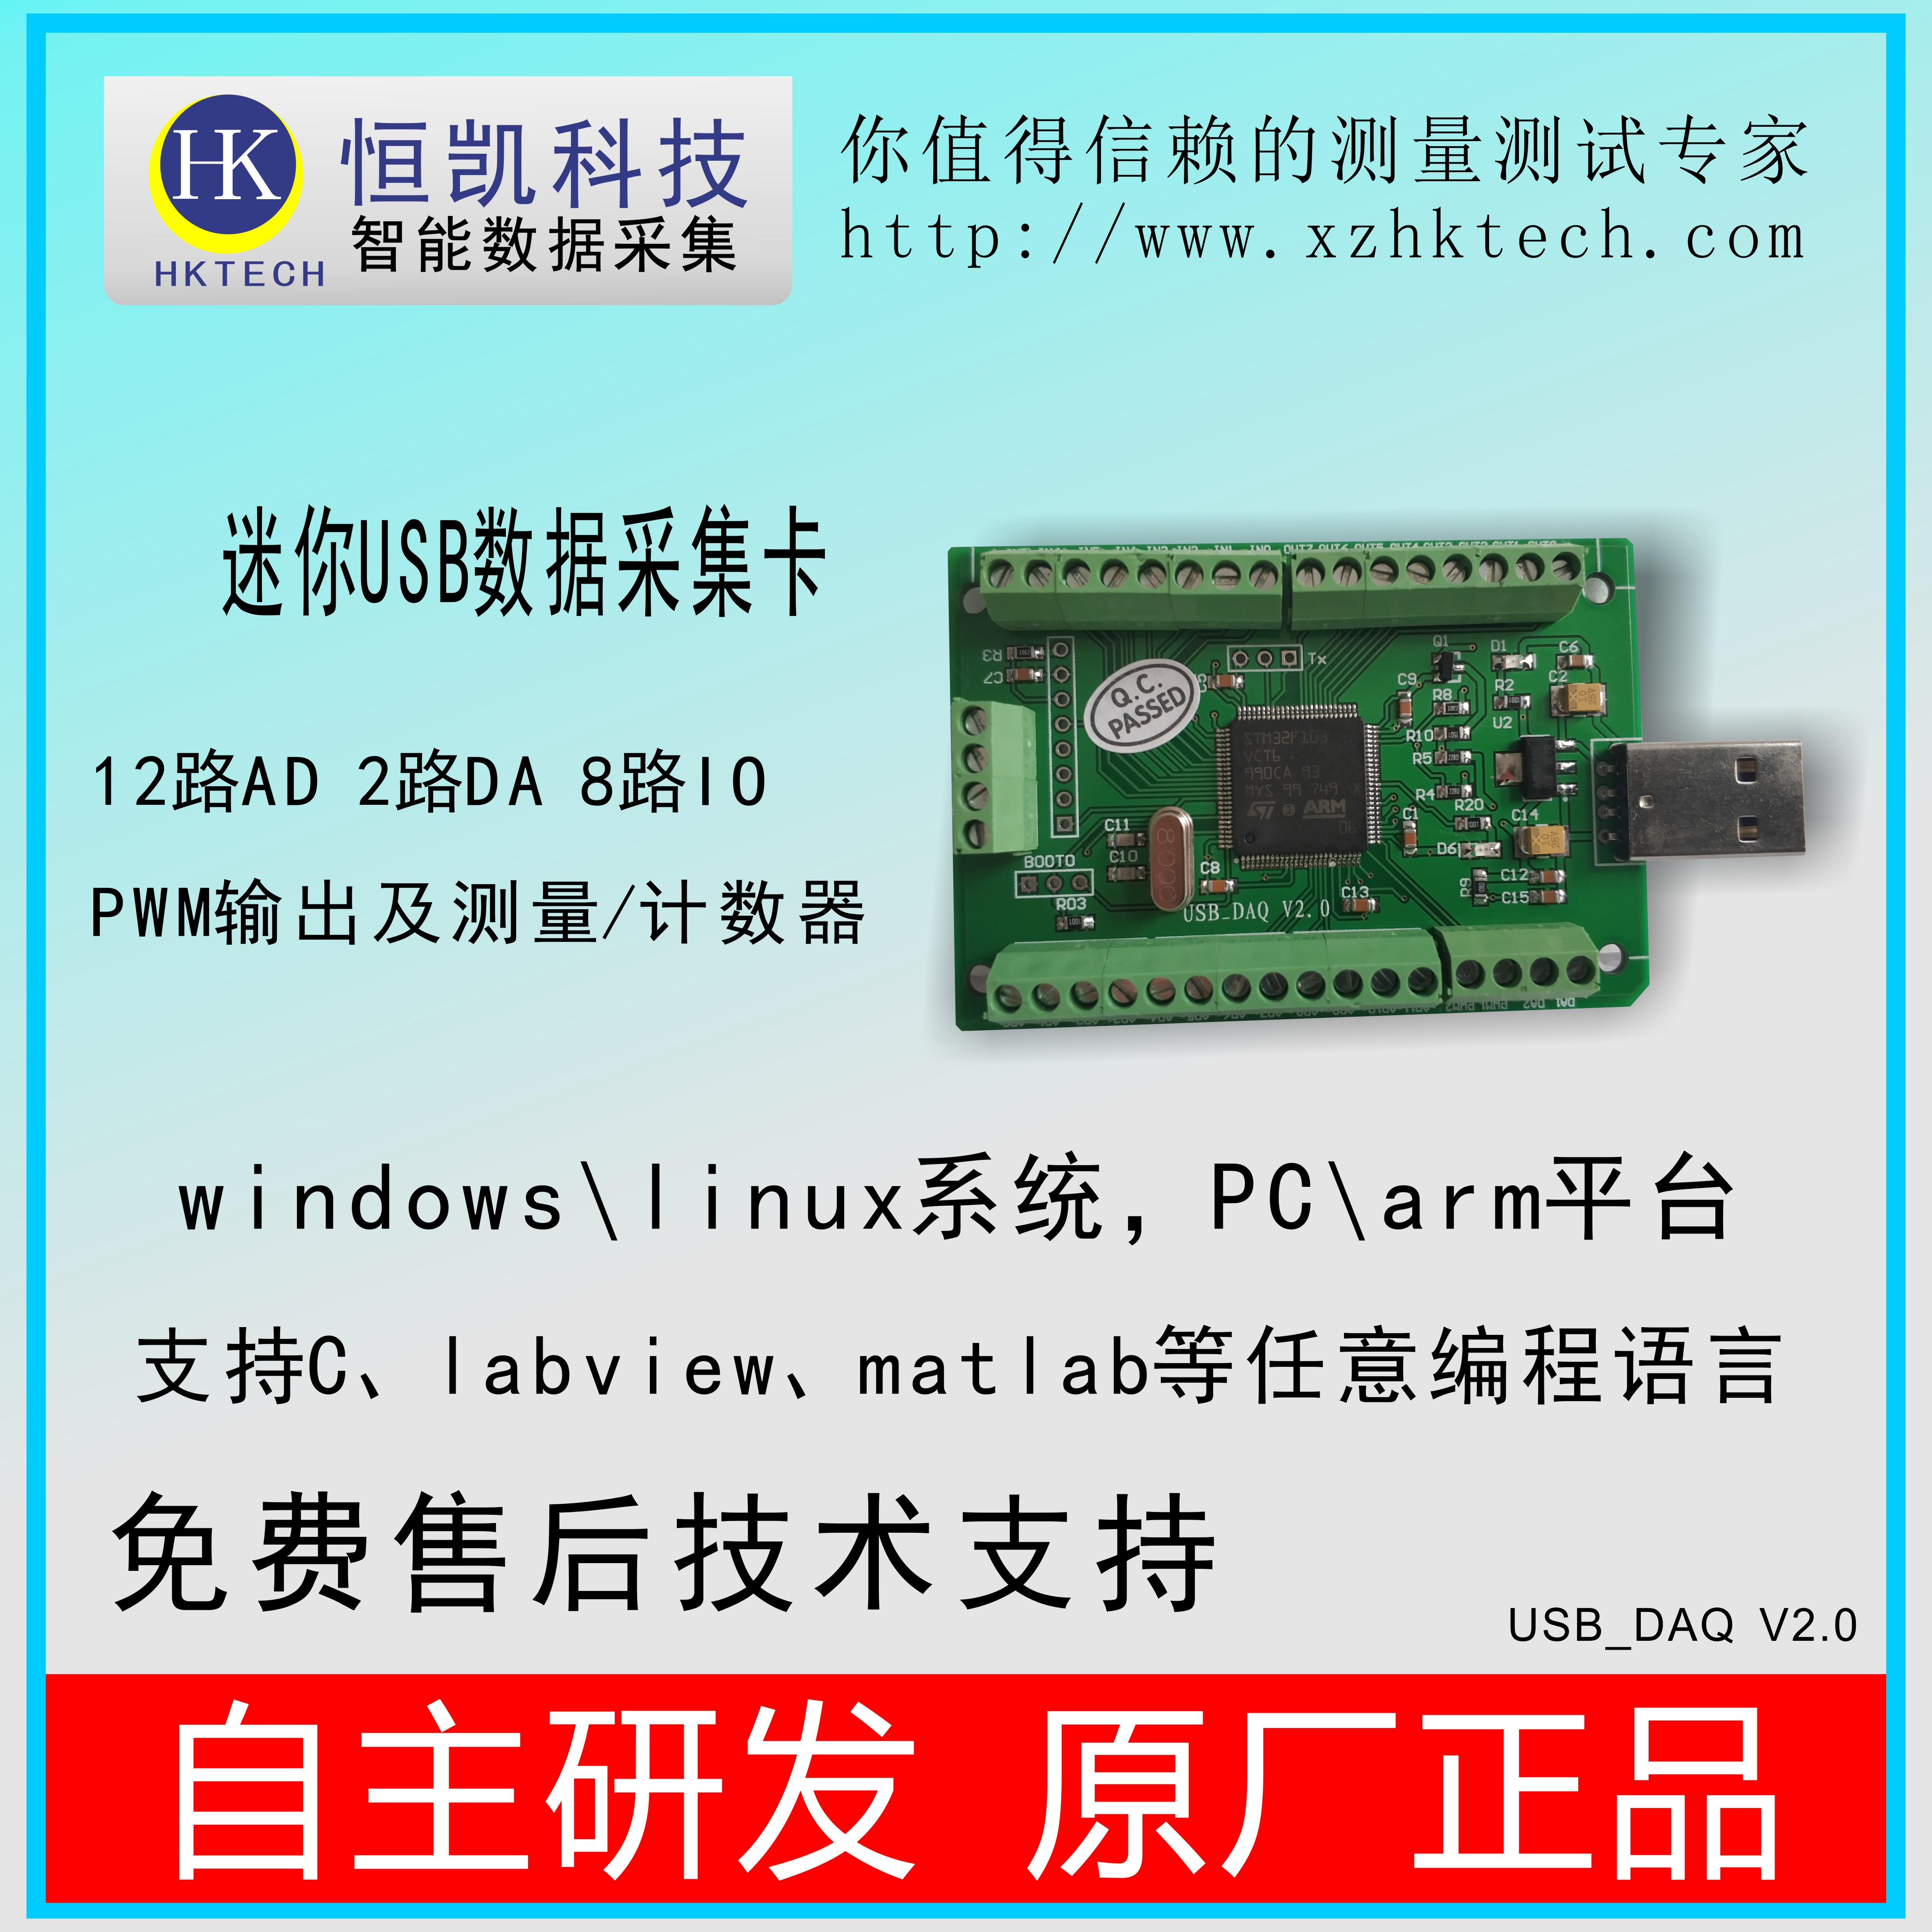 Mini USB Data Acquisition Card -12 Road AD/2 Road DA/8 Road IO/PWM Output and Measurement / Counter 2pcs car trunk lid lifting device spring for corolla mistra teana for kia k2 k3 k5 for cruze for accord city cerato for sonata